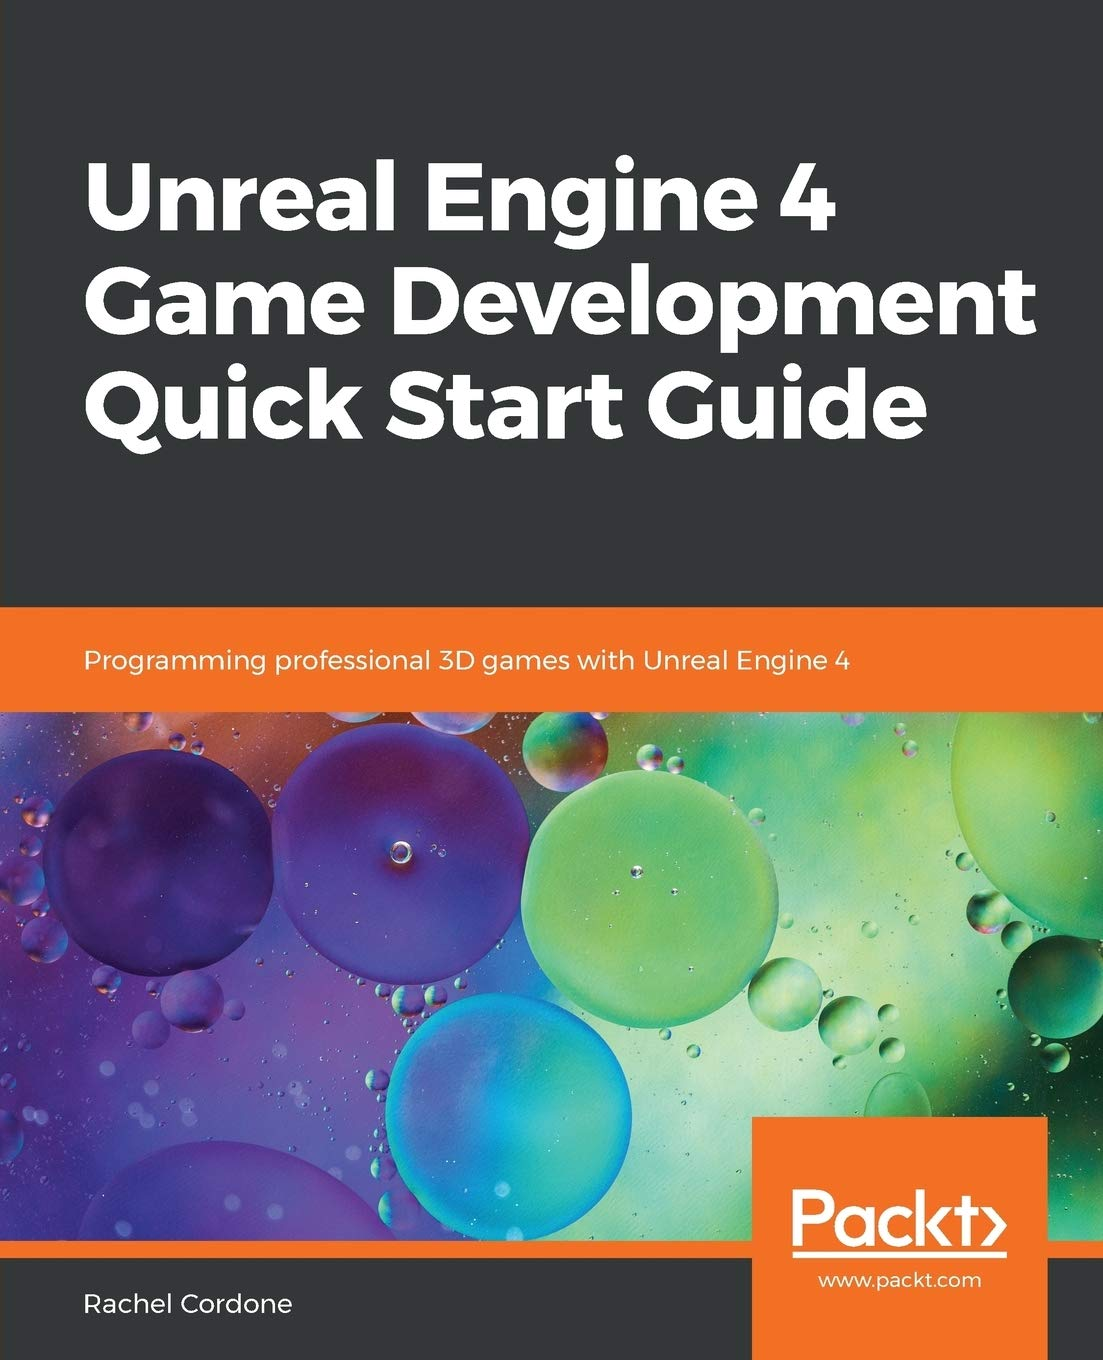 Image OfUnreal Engine 4 Game Development Quick Start Guide: Programming Professional 3D Games With Unreal Engine 4